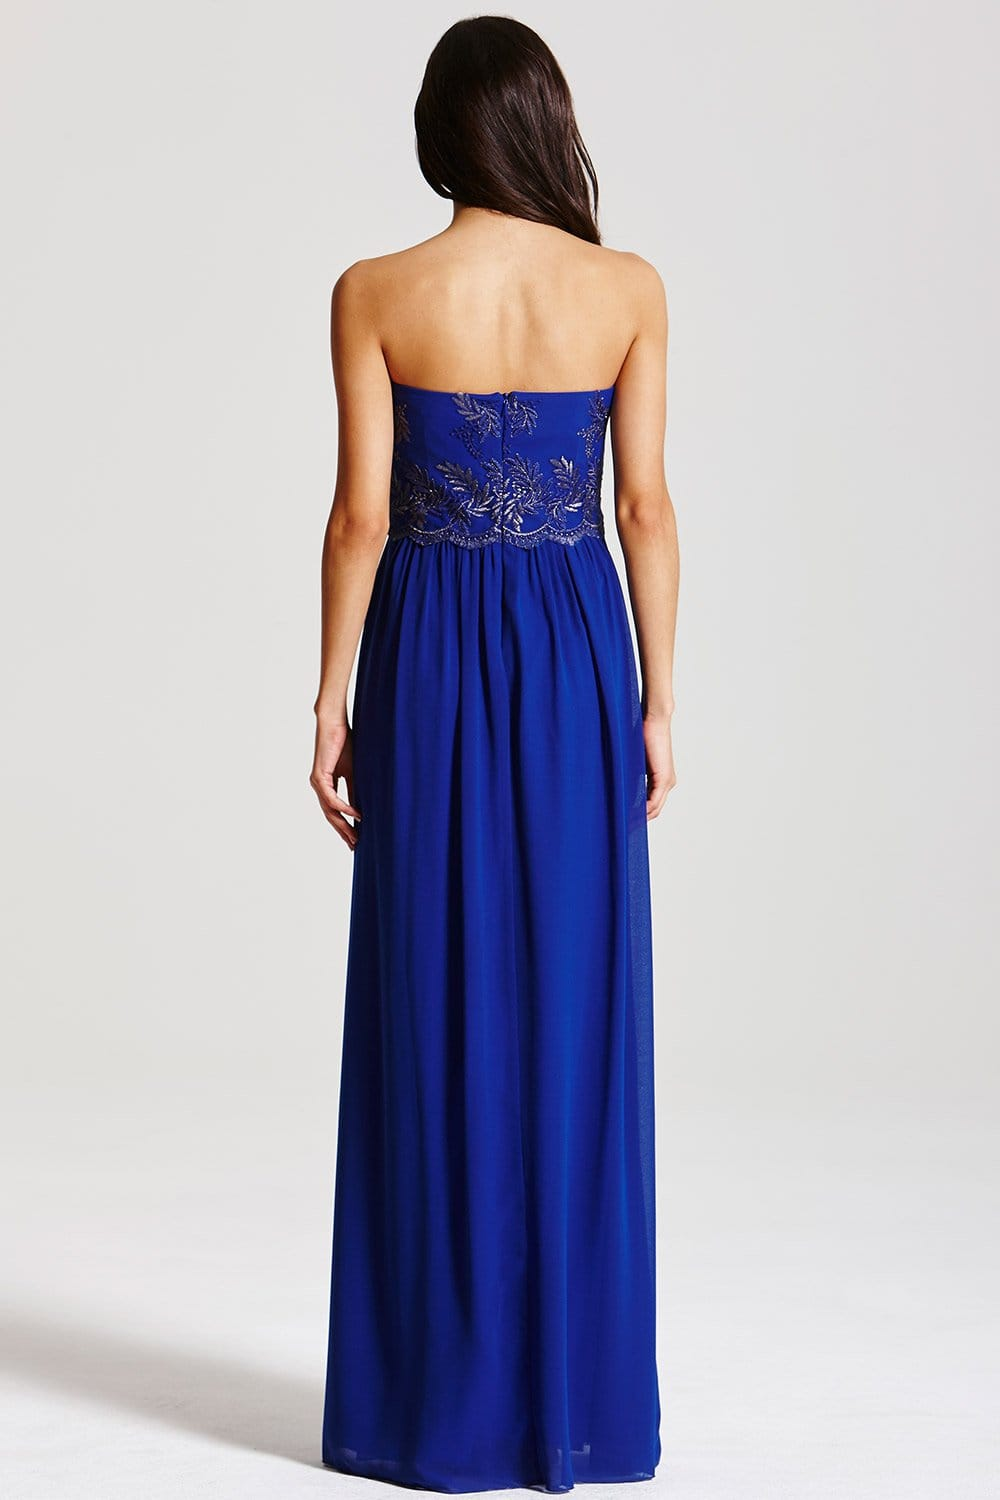 Cobalt Blue Embroidered Maxi Dress From Little Mistress Uk